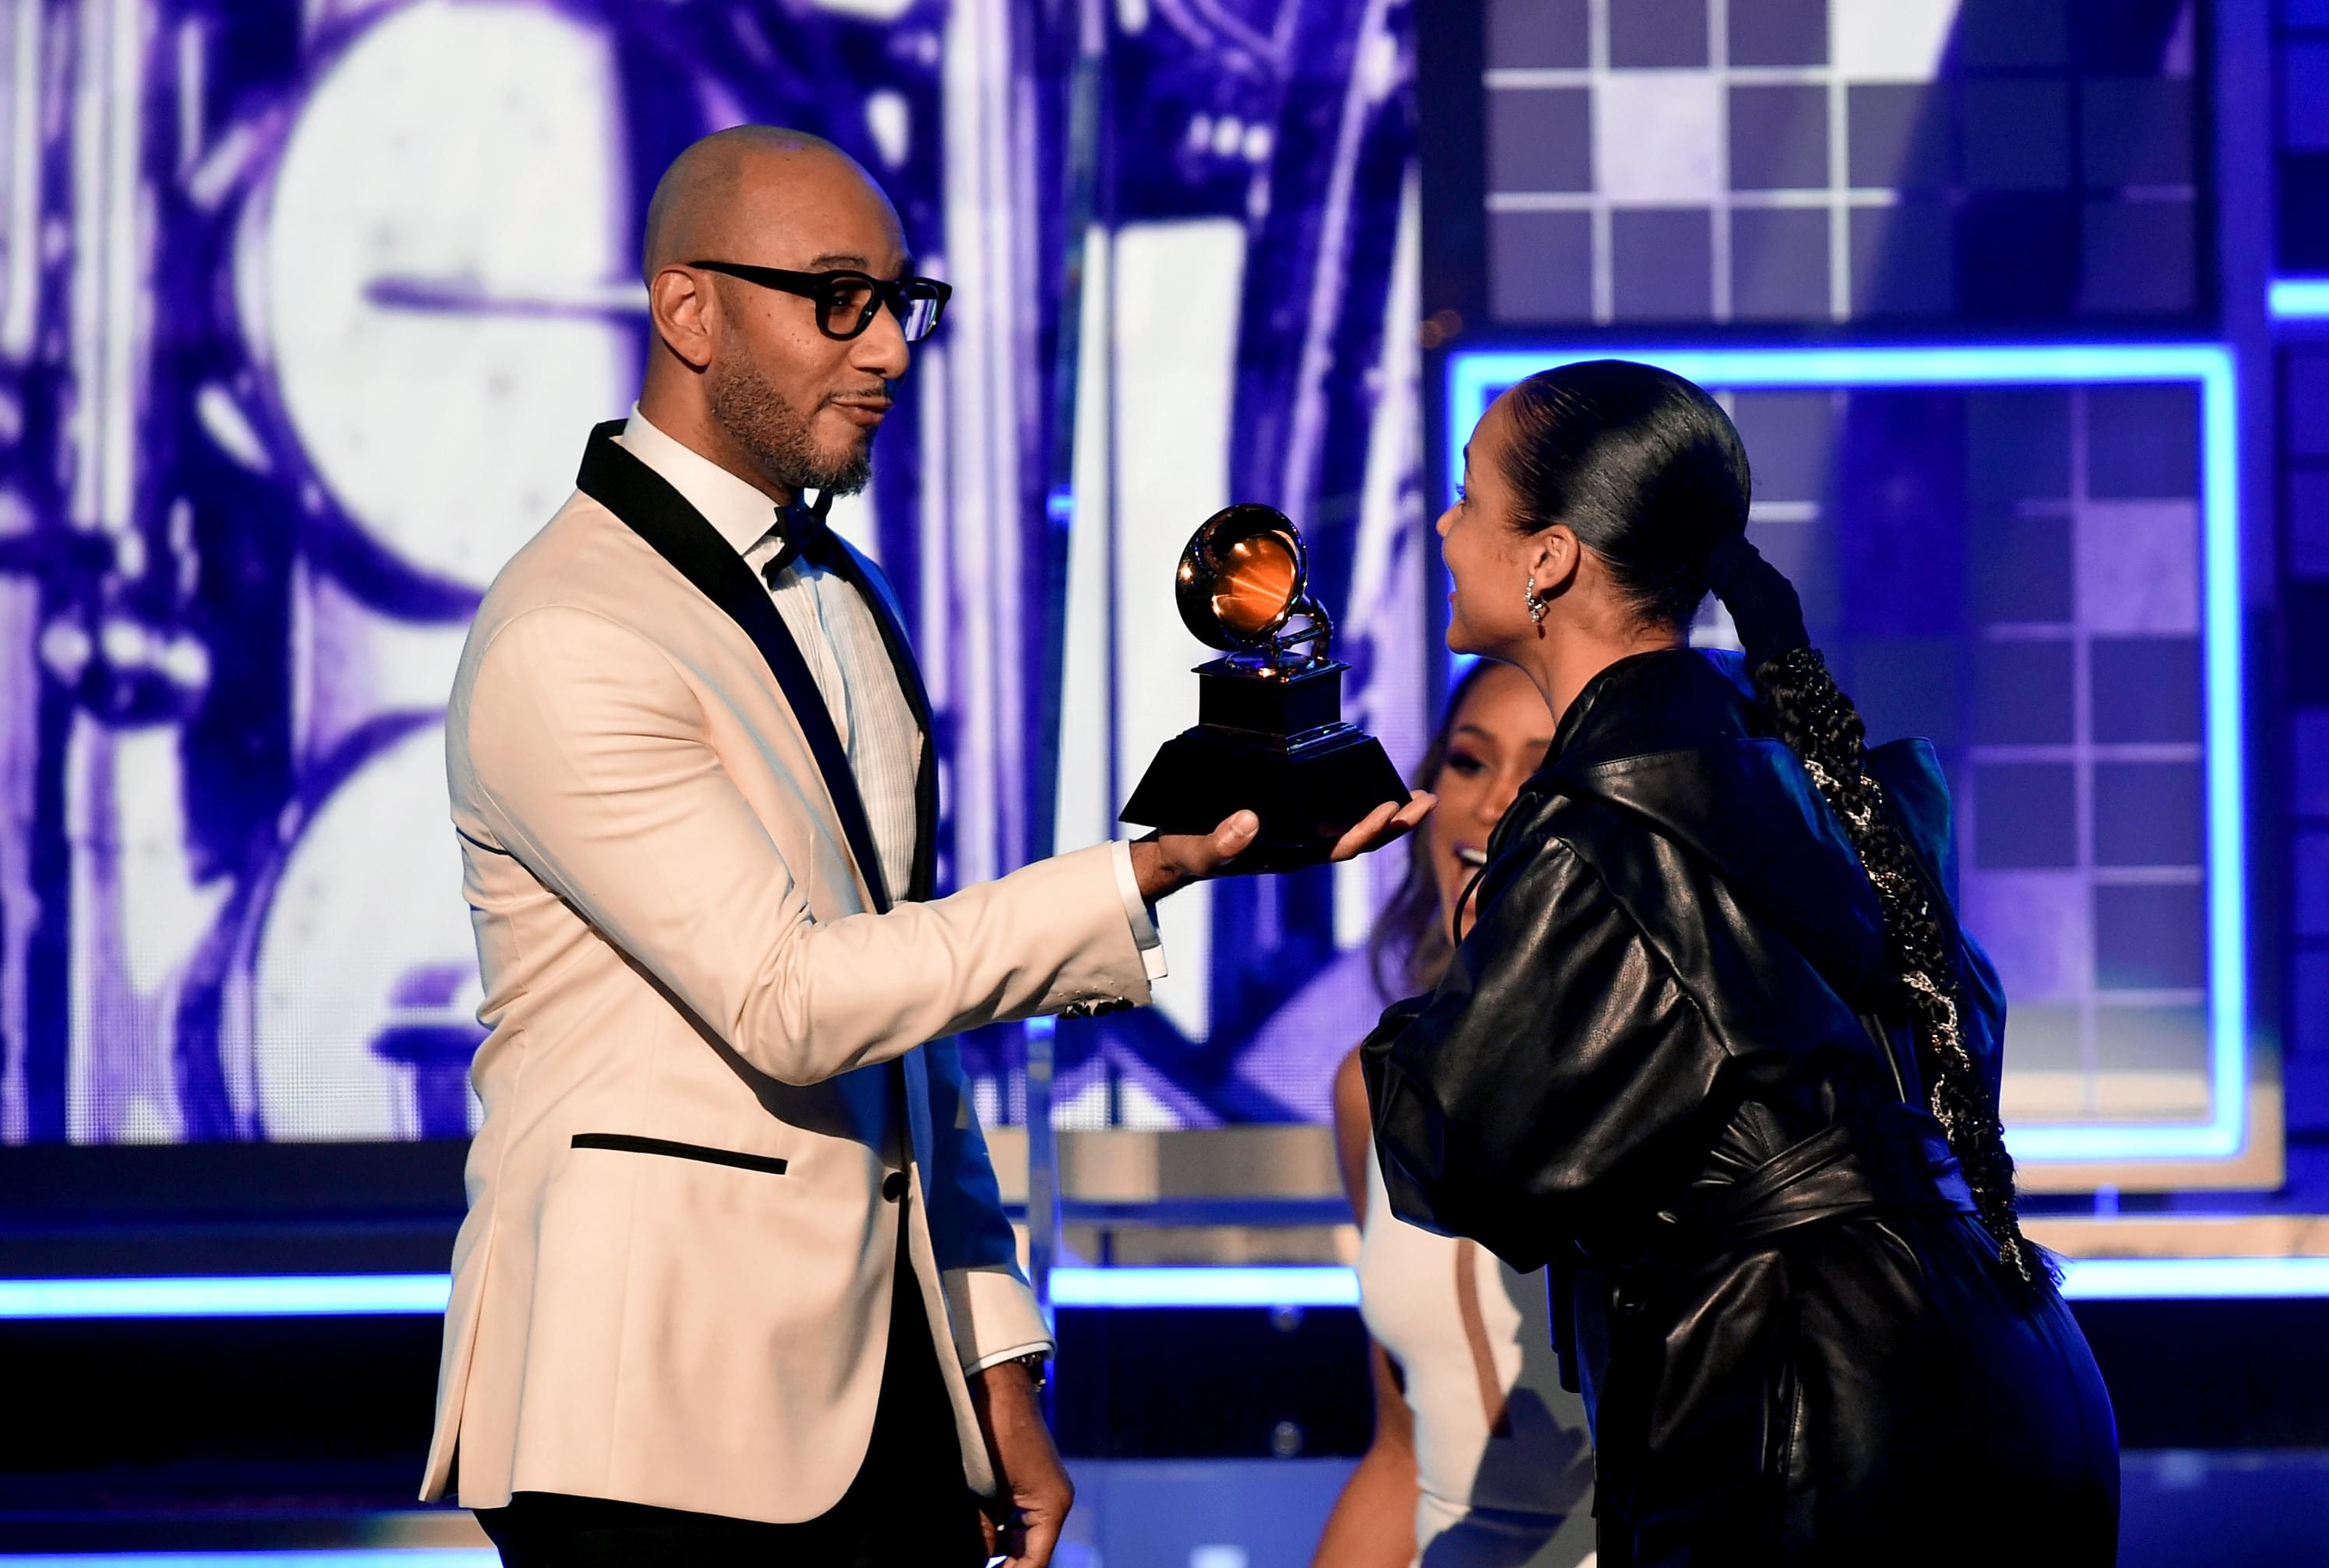 Grammy Awards: Complete Winners List From The 61st Annual Awards Show